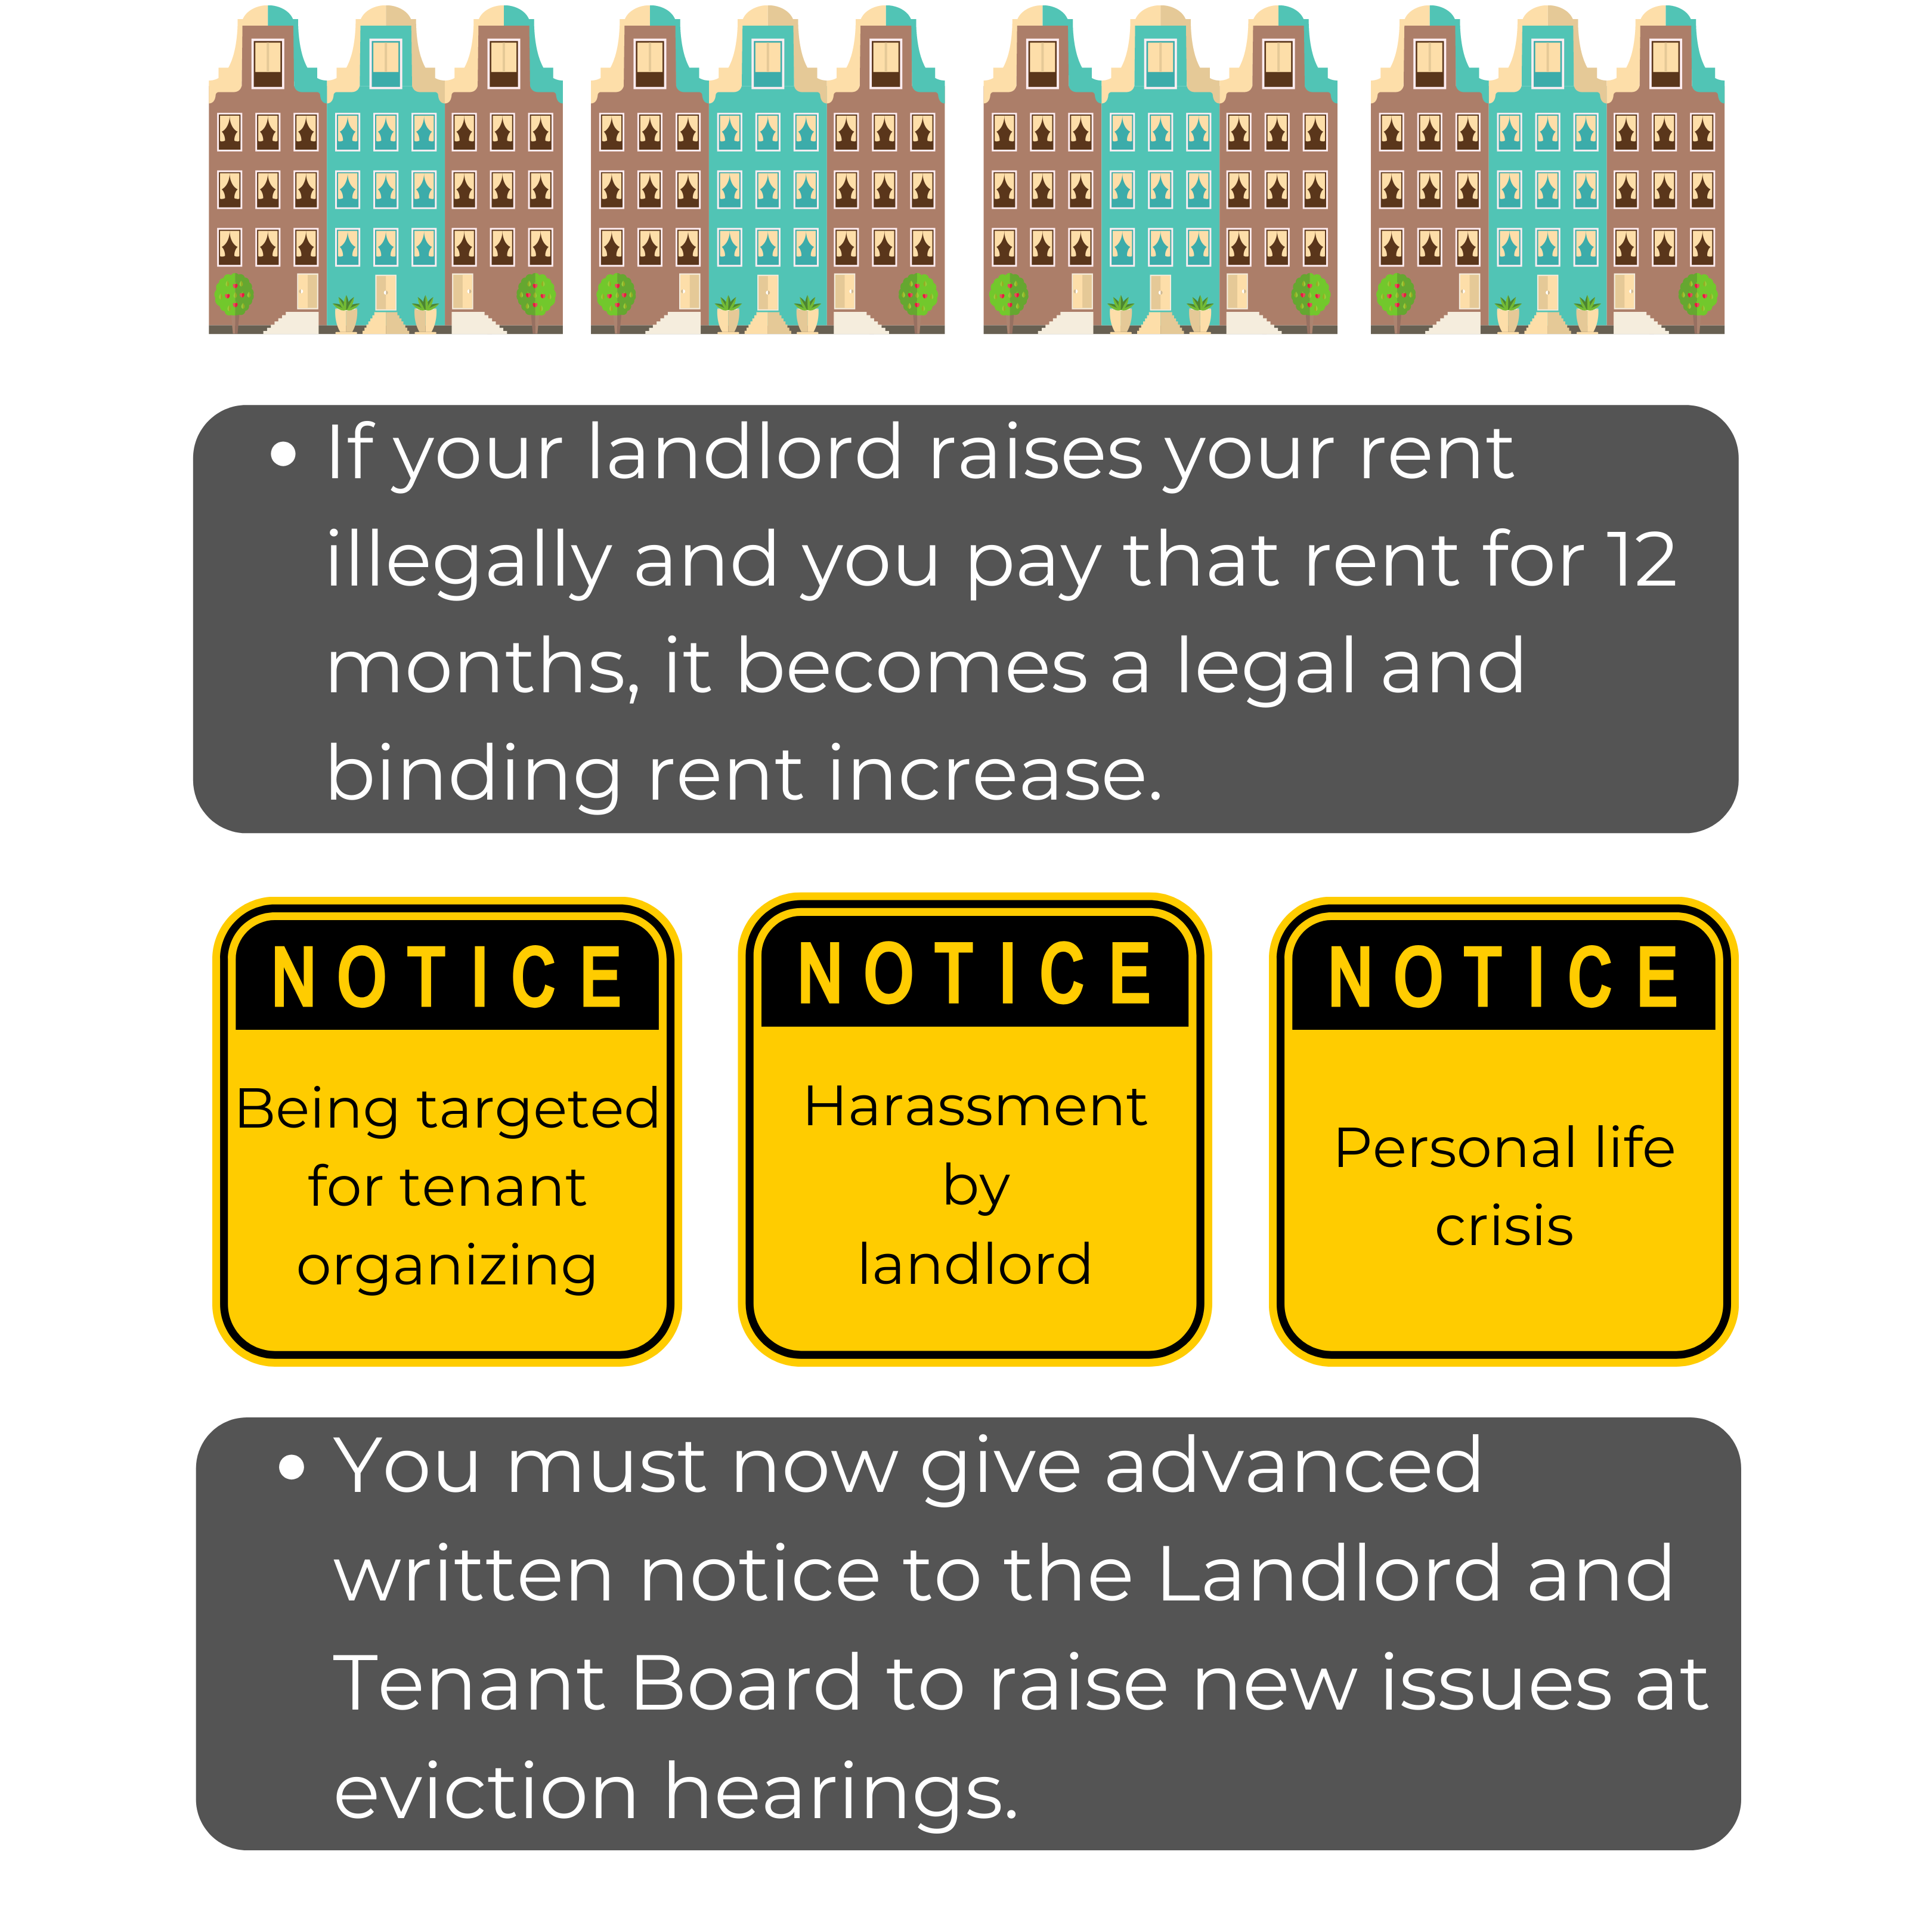 If your landlordraises your rent illegallyand you pay that rent for 12 months, it becomes a legal and binding rent increase.You must now give advanced written notice to the Landlord and Tenant Board to raise new issues at eviction hearings.